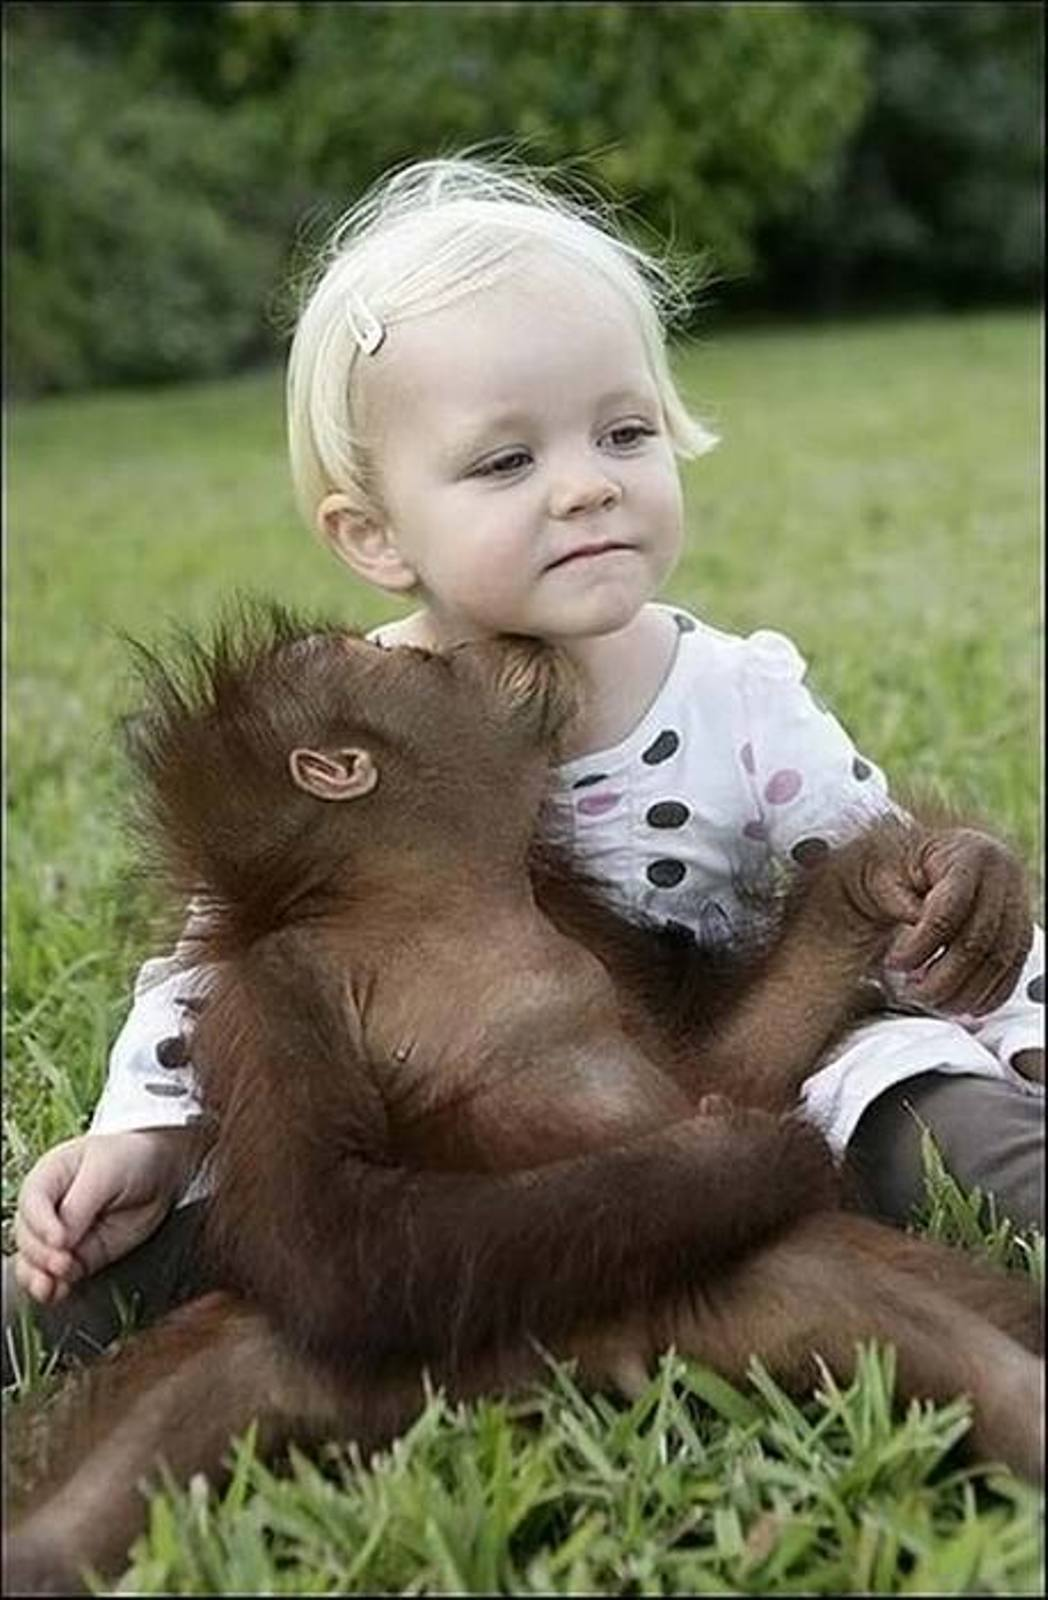 best friends cute baby girl and baby monkey